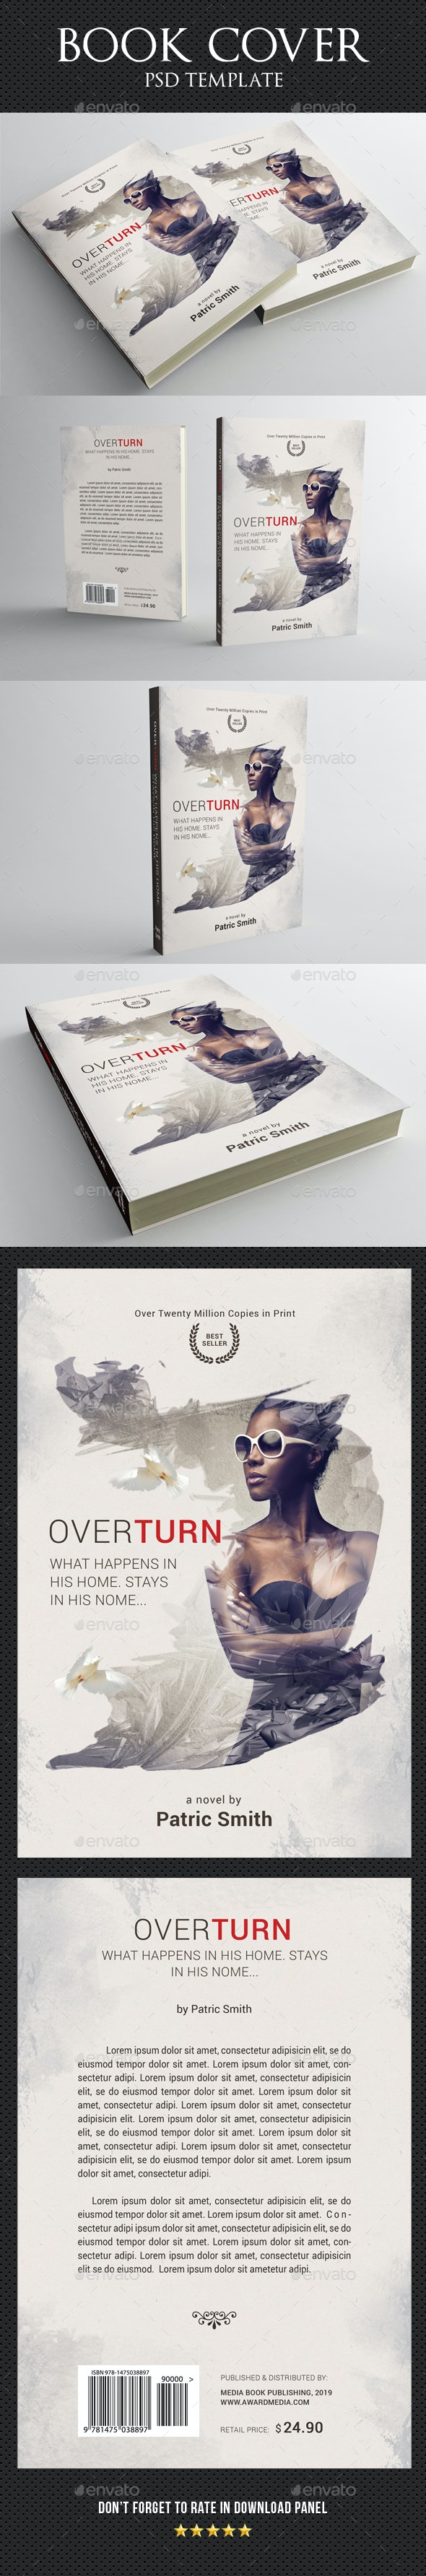 Book Cover Template 61 - Miscellaneous Print Templates